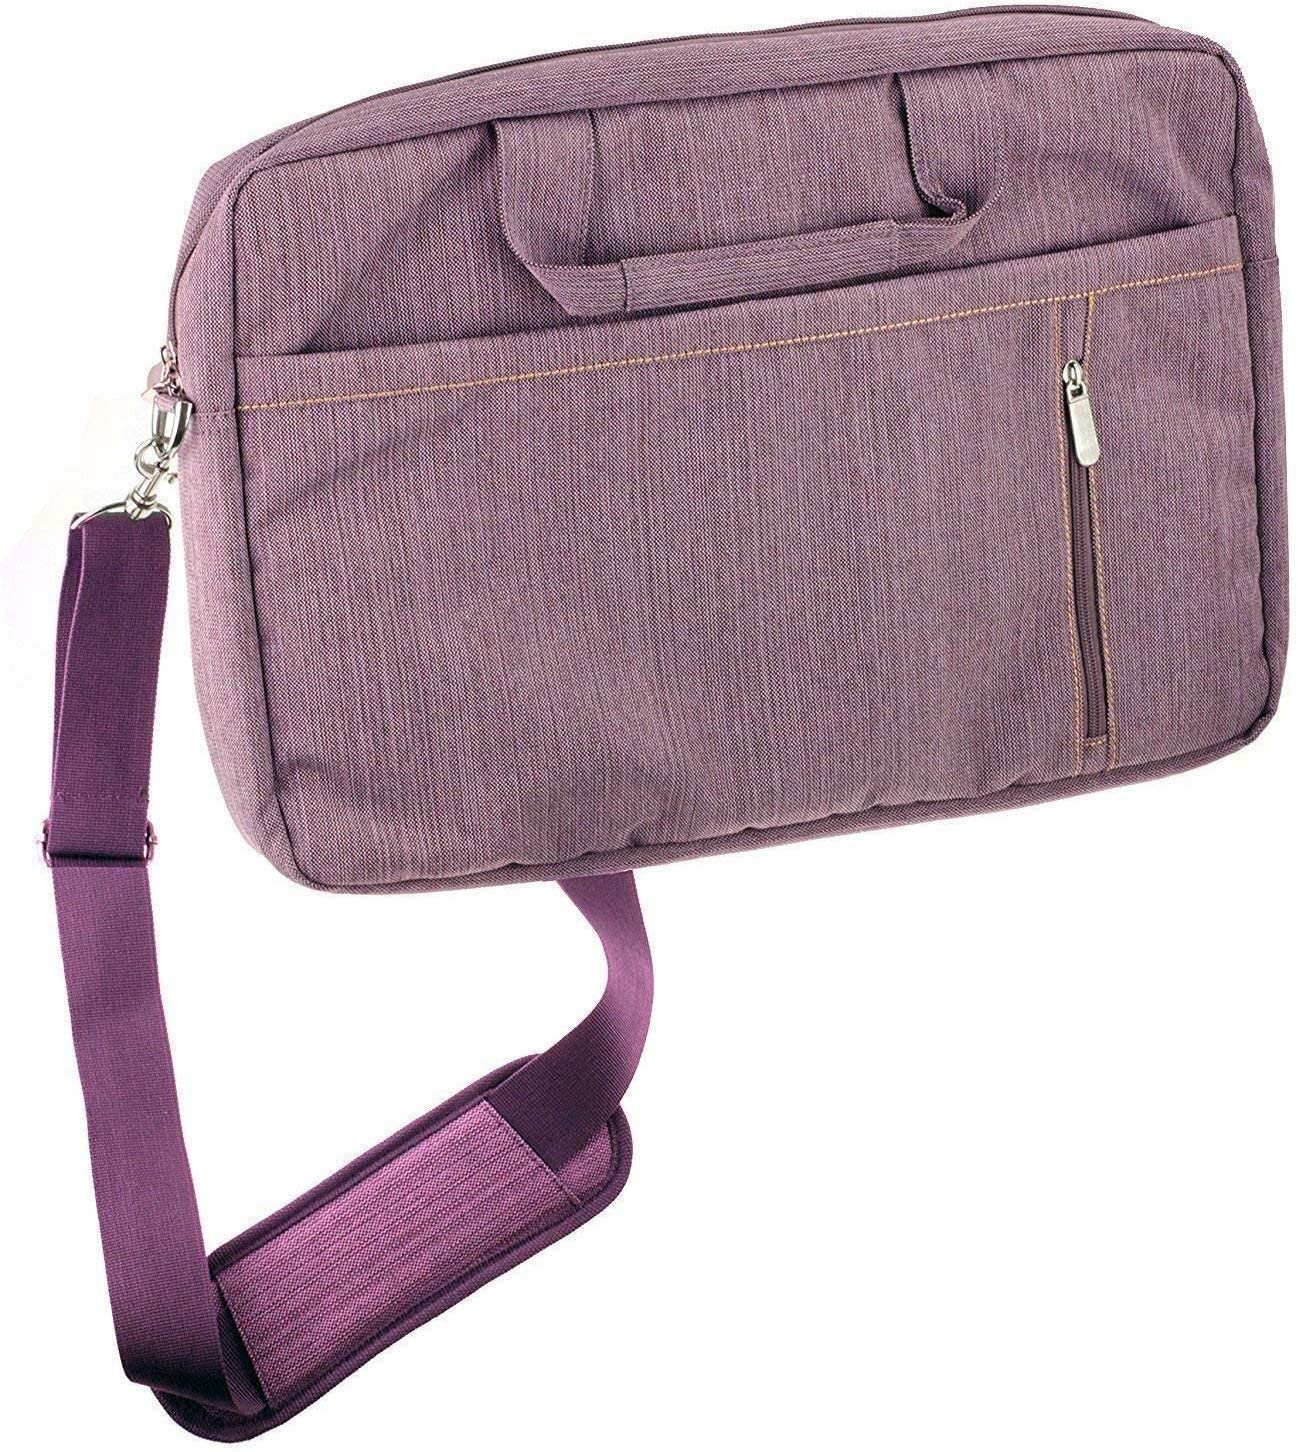 Navitech Purple Sleek Premium Water Resistant Laptop Bag - Compatible with The Dell Inspiron 15-3593 Laptop 15.6